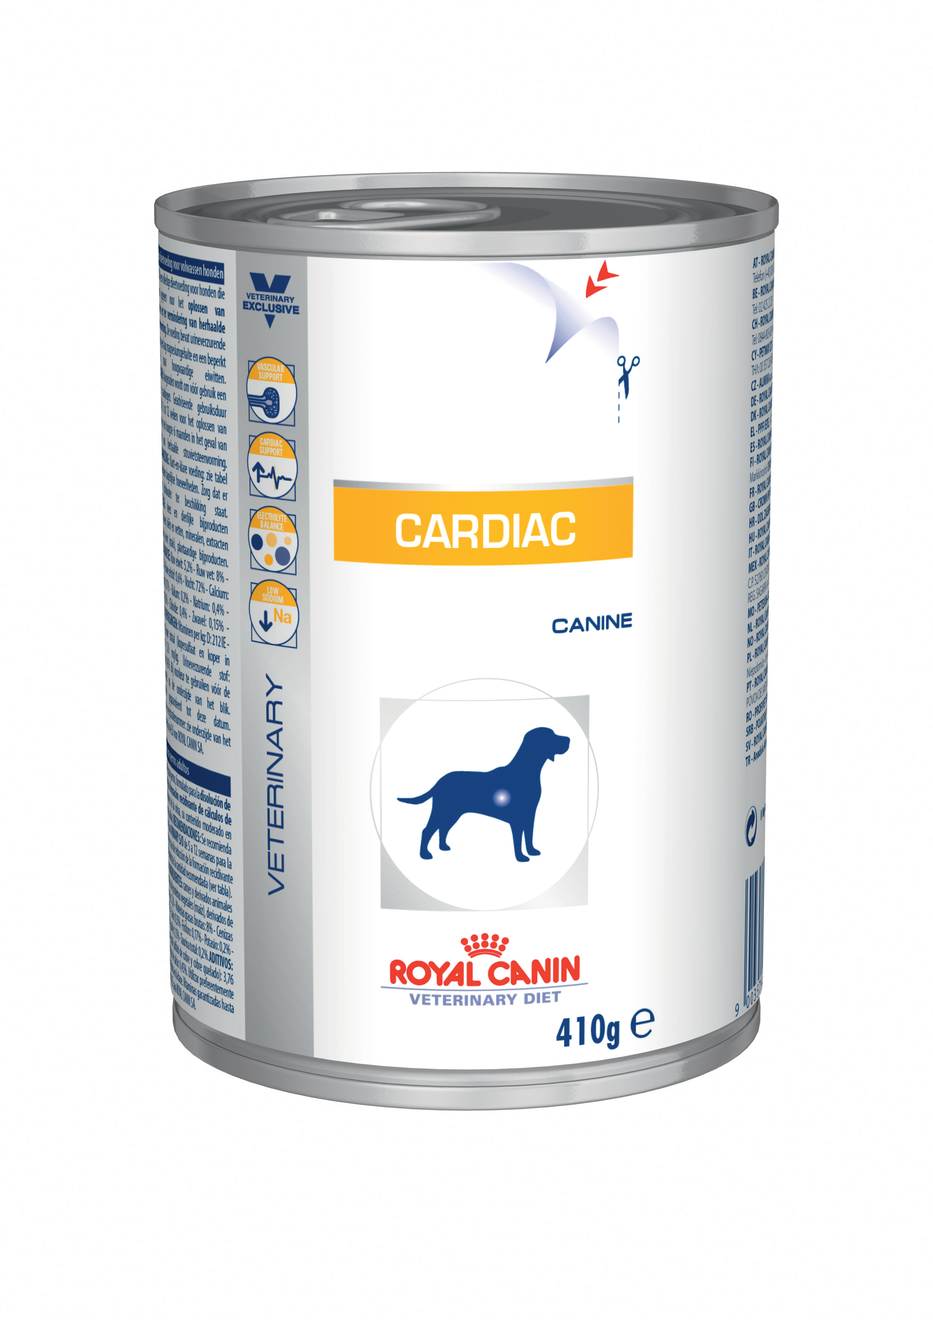 Royal Canin Veterinary Diet Dog CARDIAC konzerva - 410g